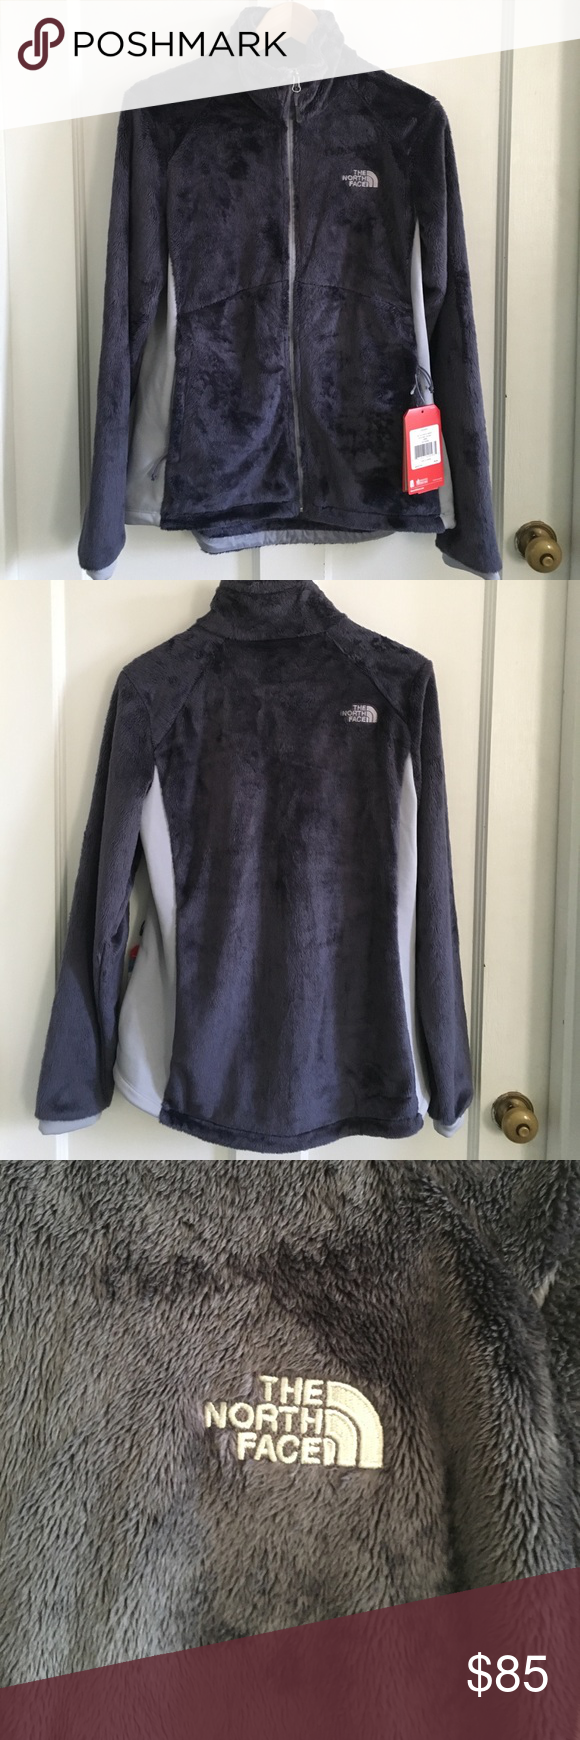 1918b360d The North Face Jacket NWT Women's Tech-Osito Jacket. Active fit ...